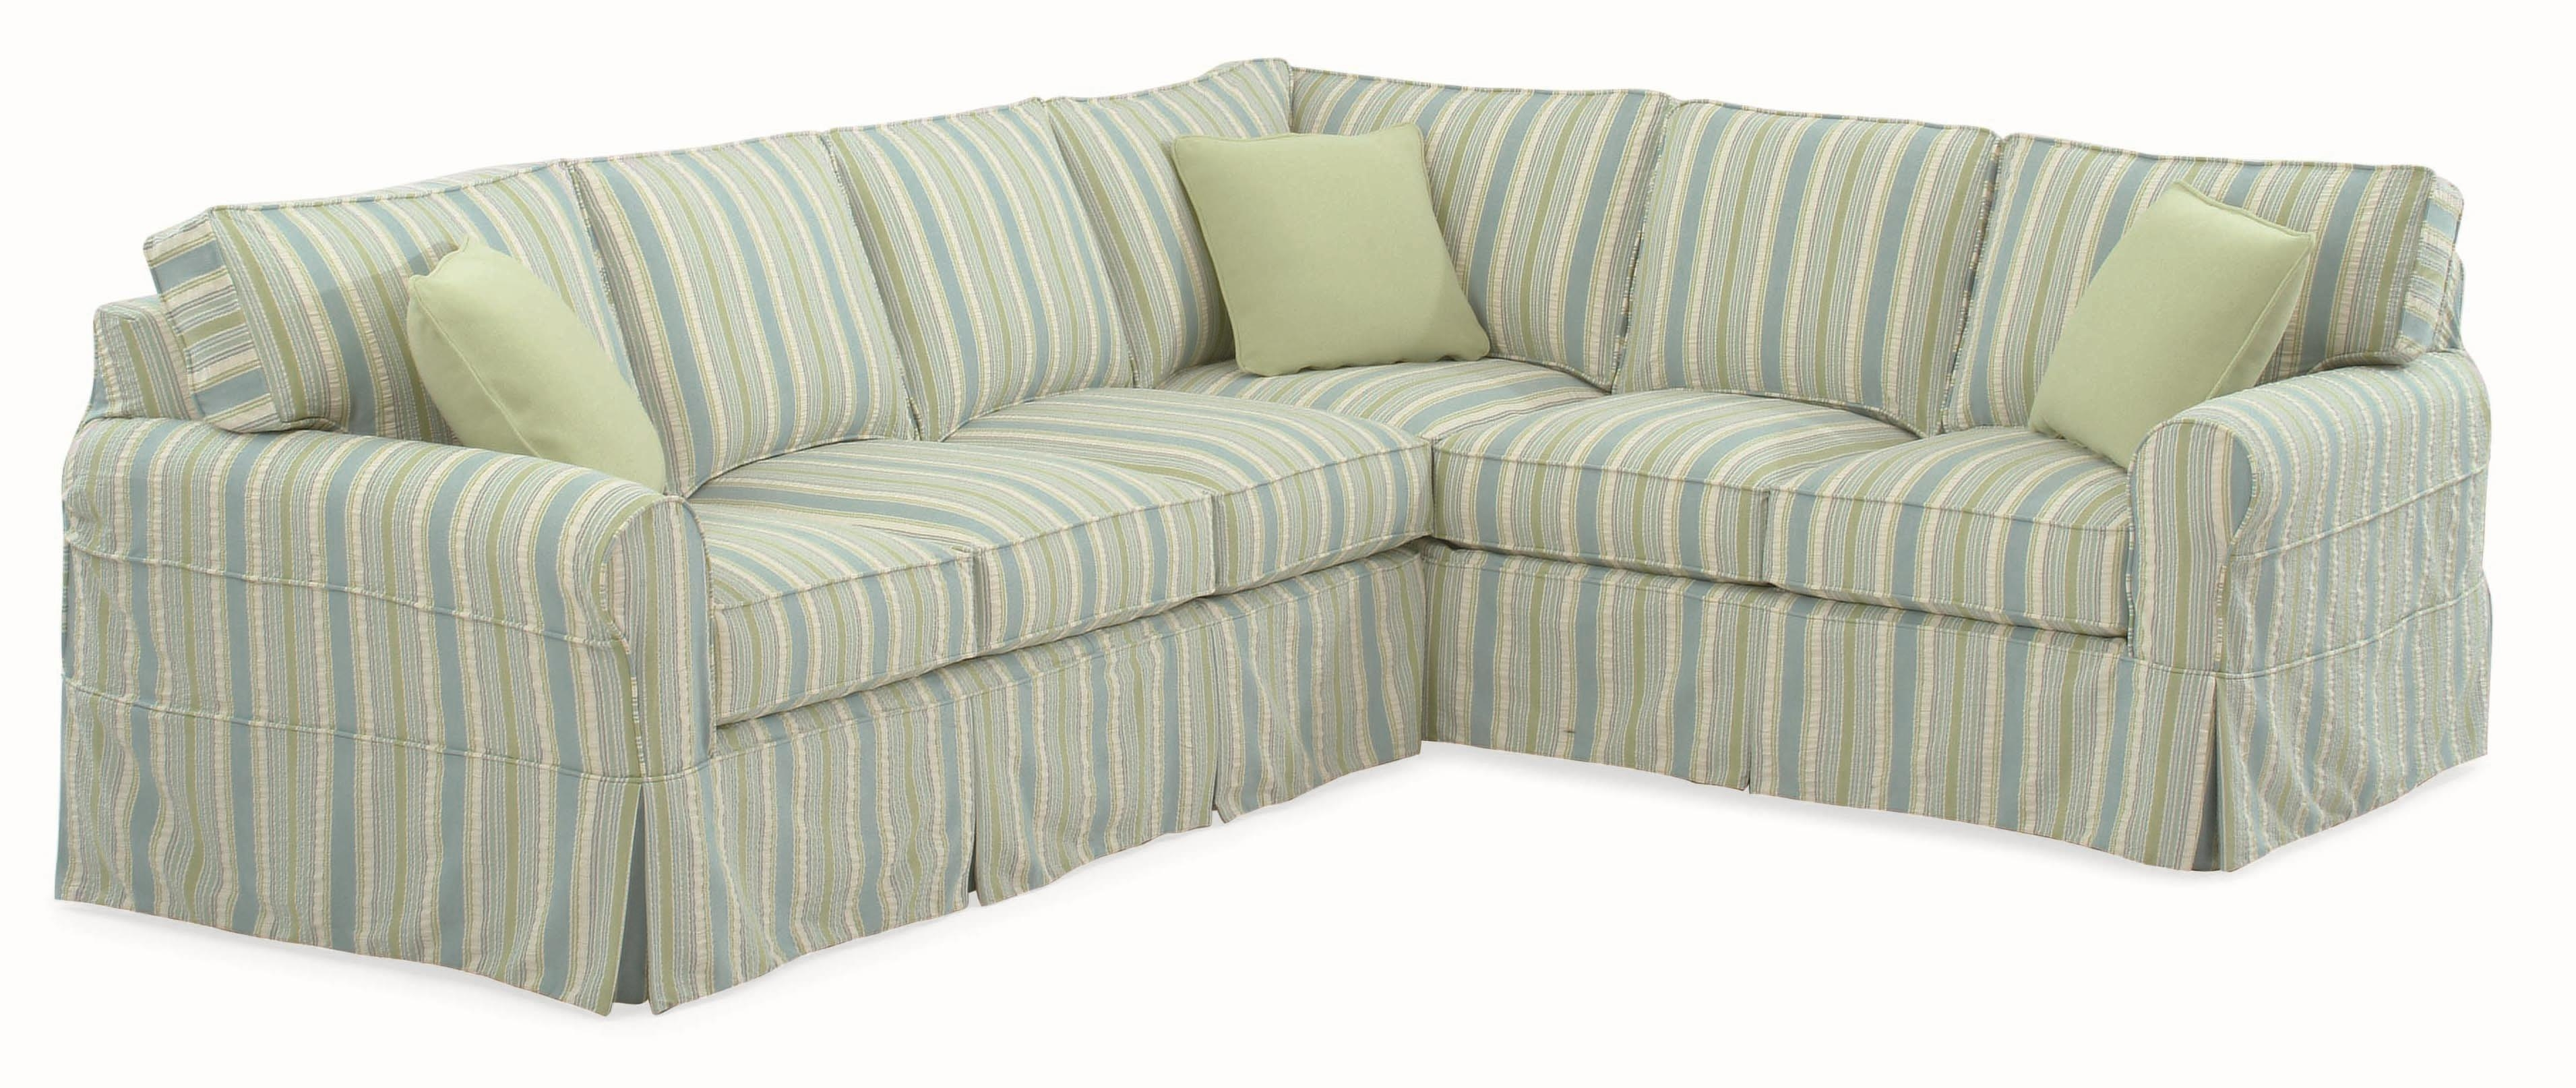 Braxton Culler 728 Casual Sectional Sofa With Rolled Arms And Intended For Braxton Sectional Sofa (Image 1 of 15)